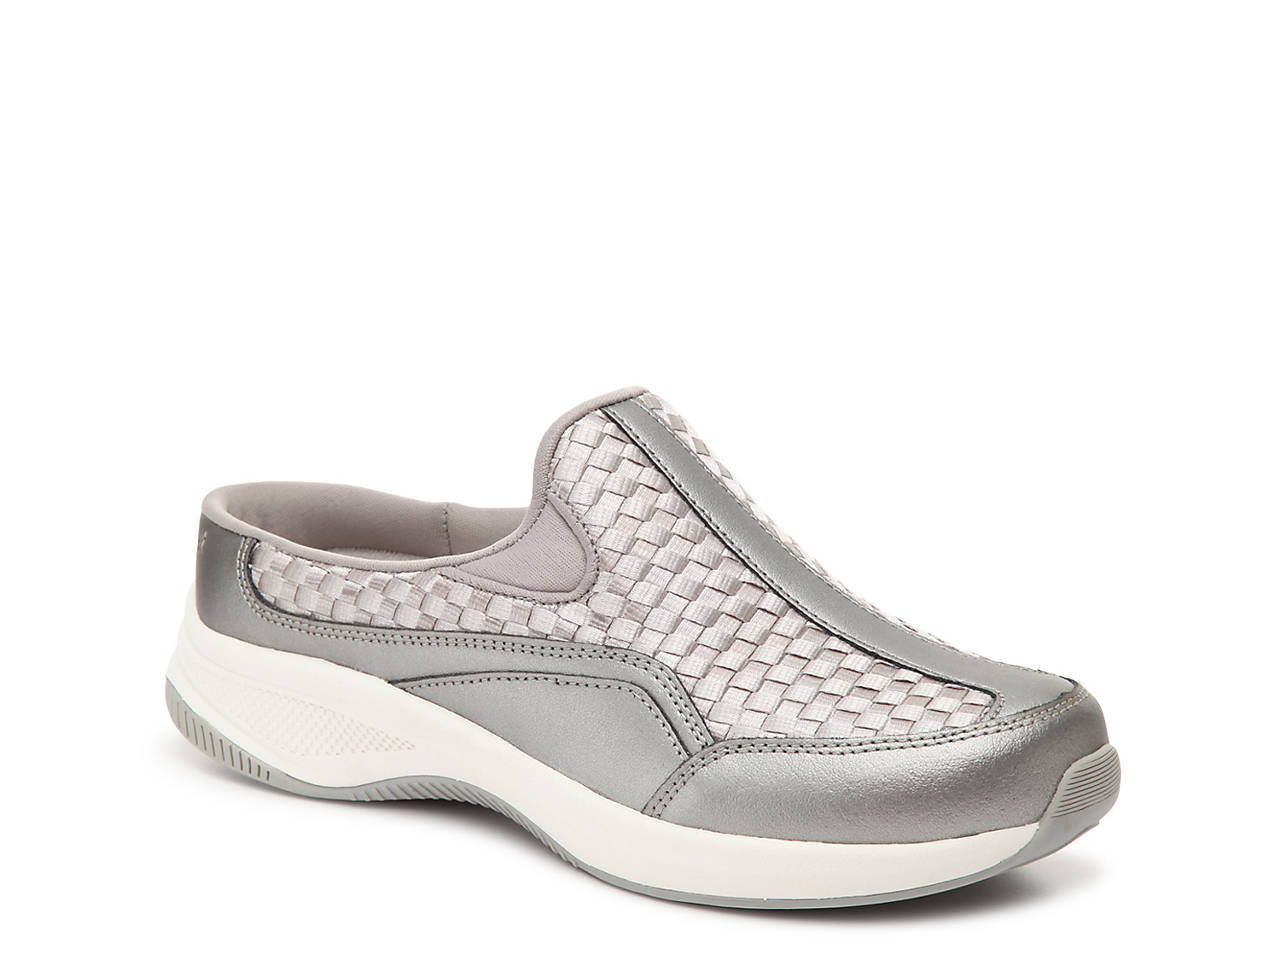 Many Kinds Of Cheap Price New Cheap Online Travel' slip-on sneakers Low Shipping Cheap Price Free Shipping High Quality 0VJzr